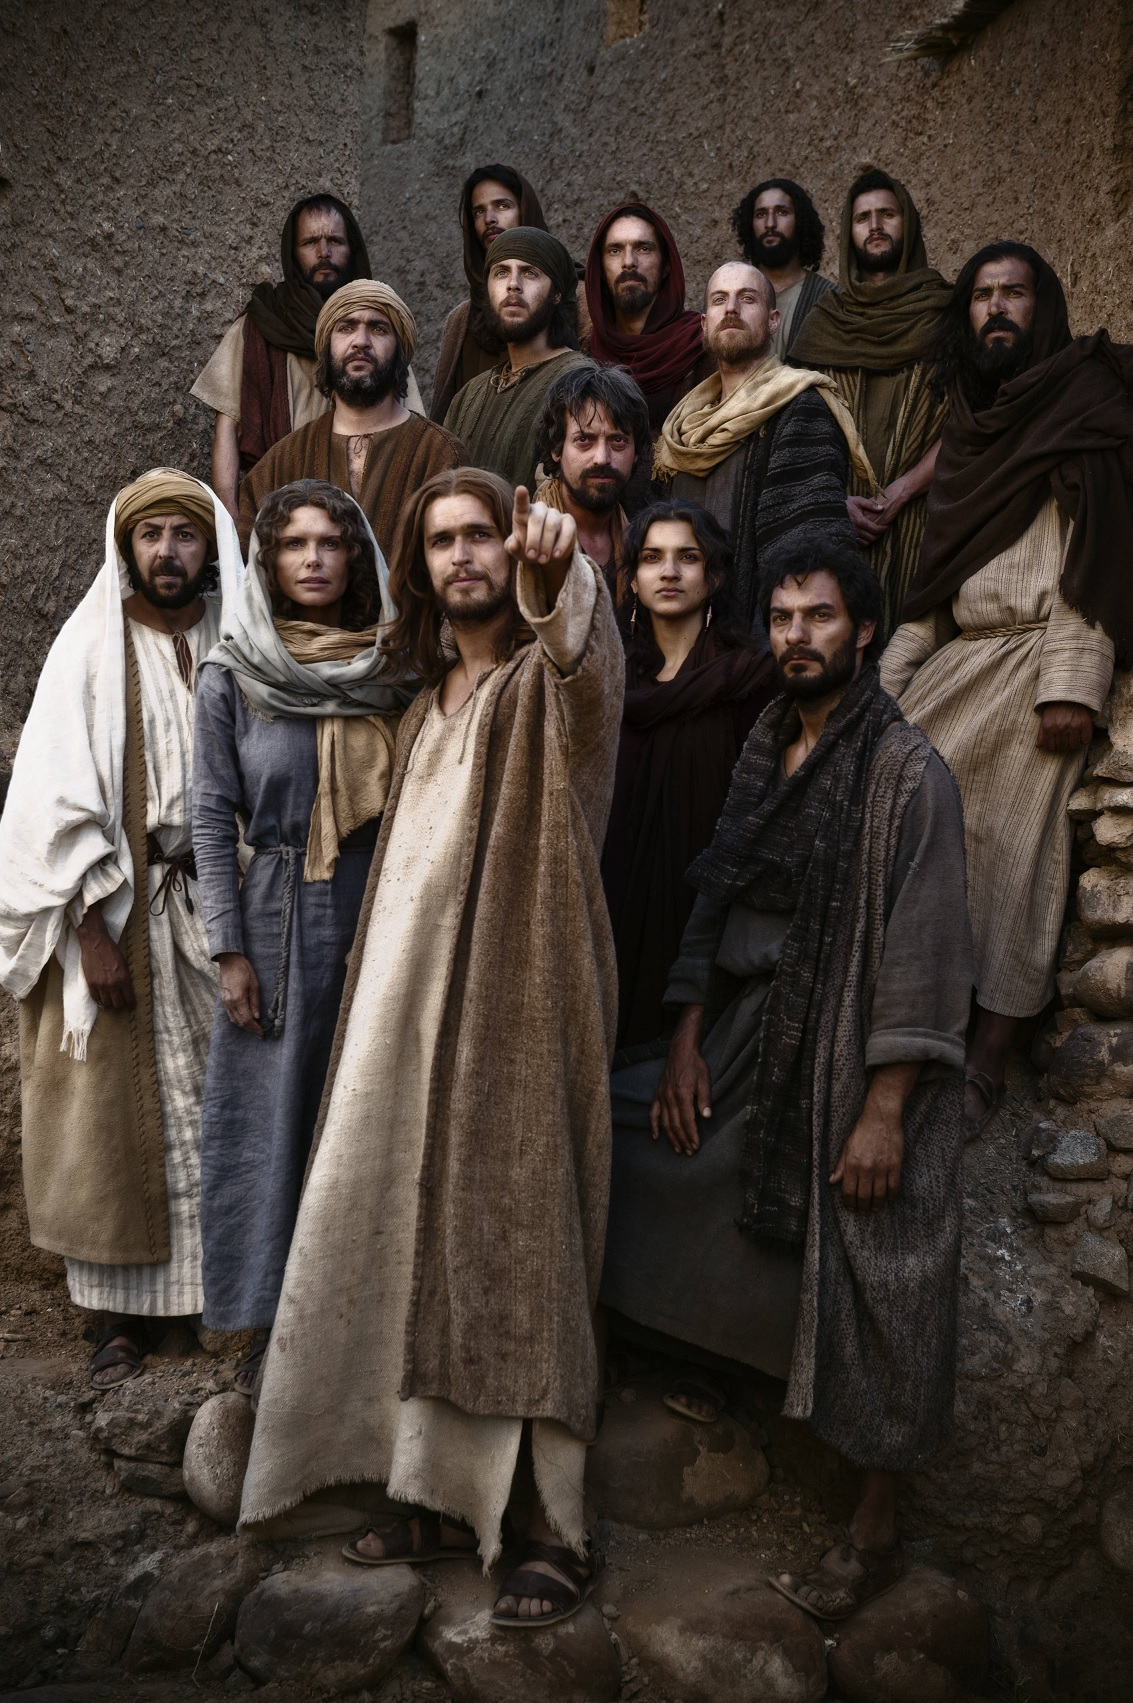 Channel 5 Sets UK Premiere Date For 'The Bible' - TVWise